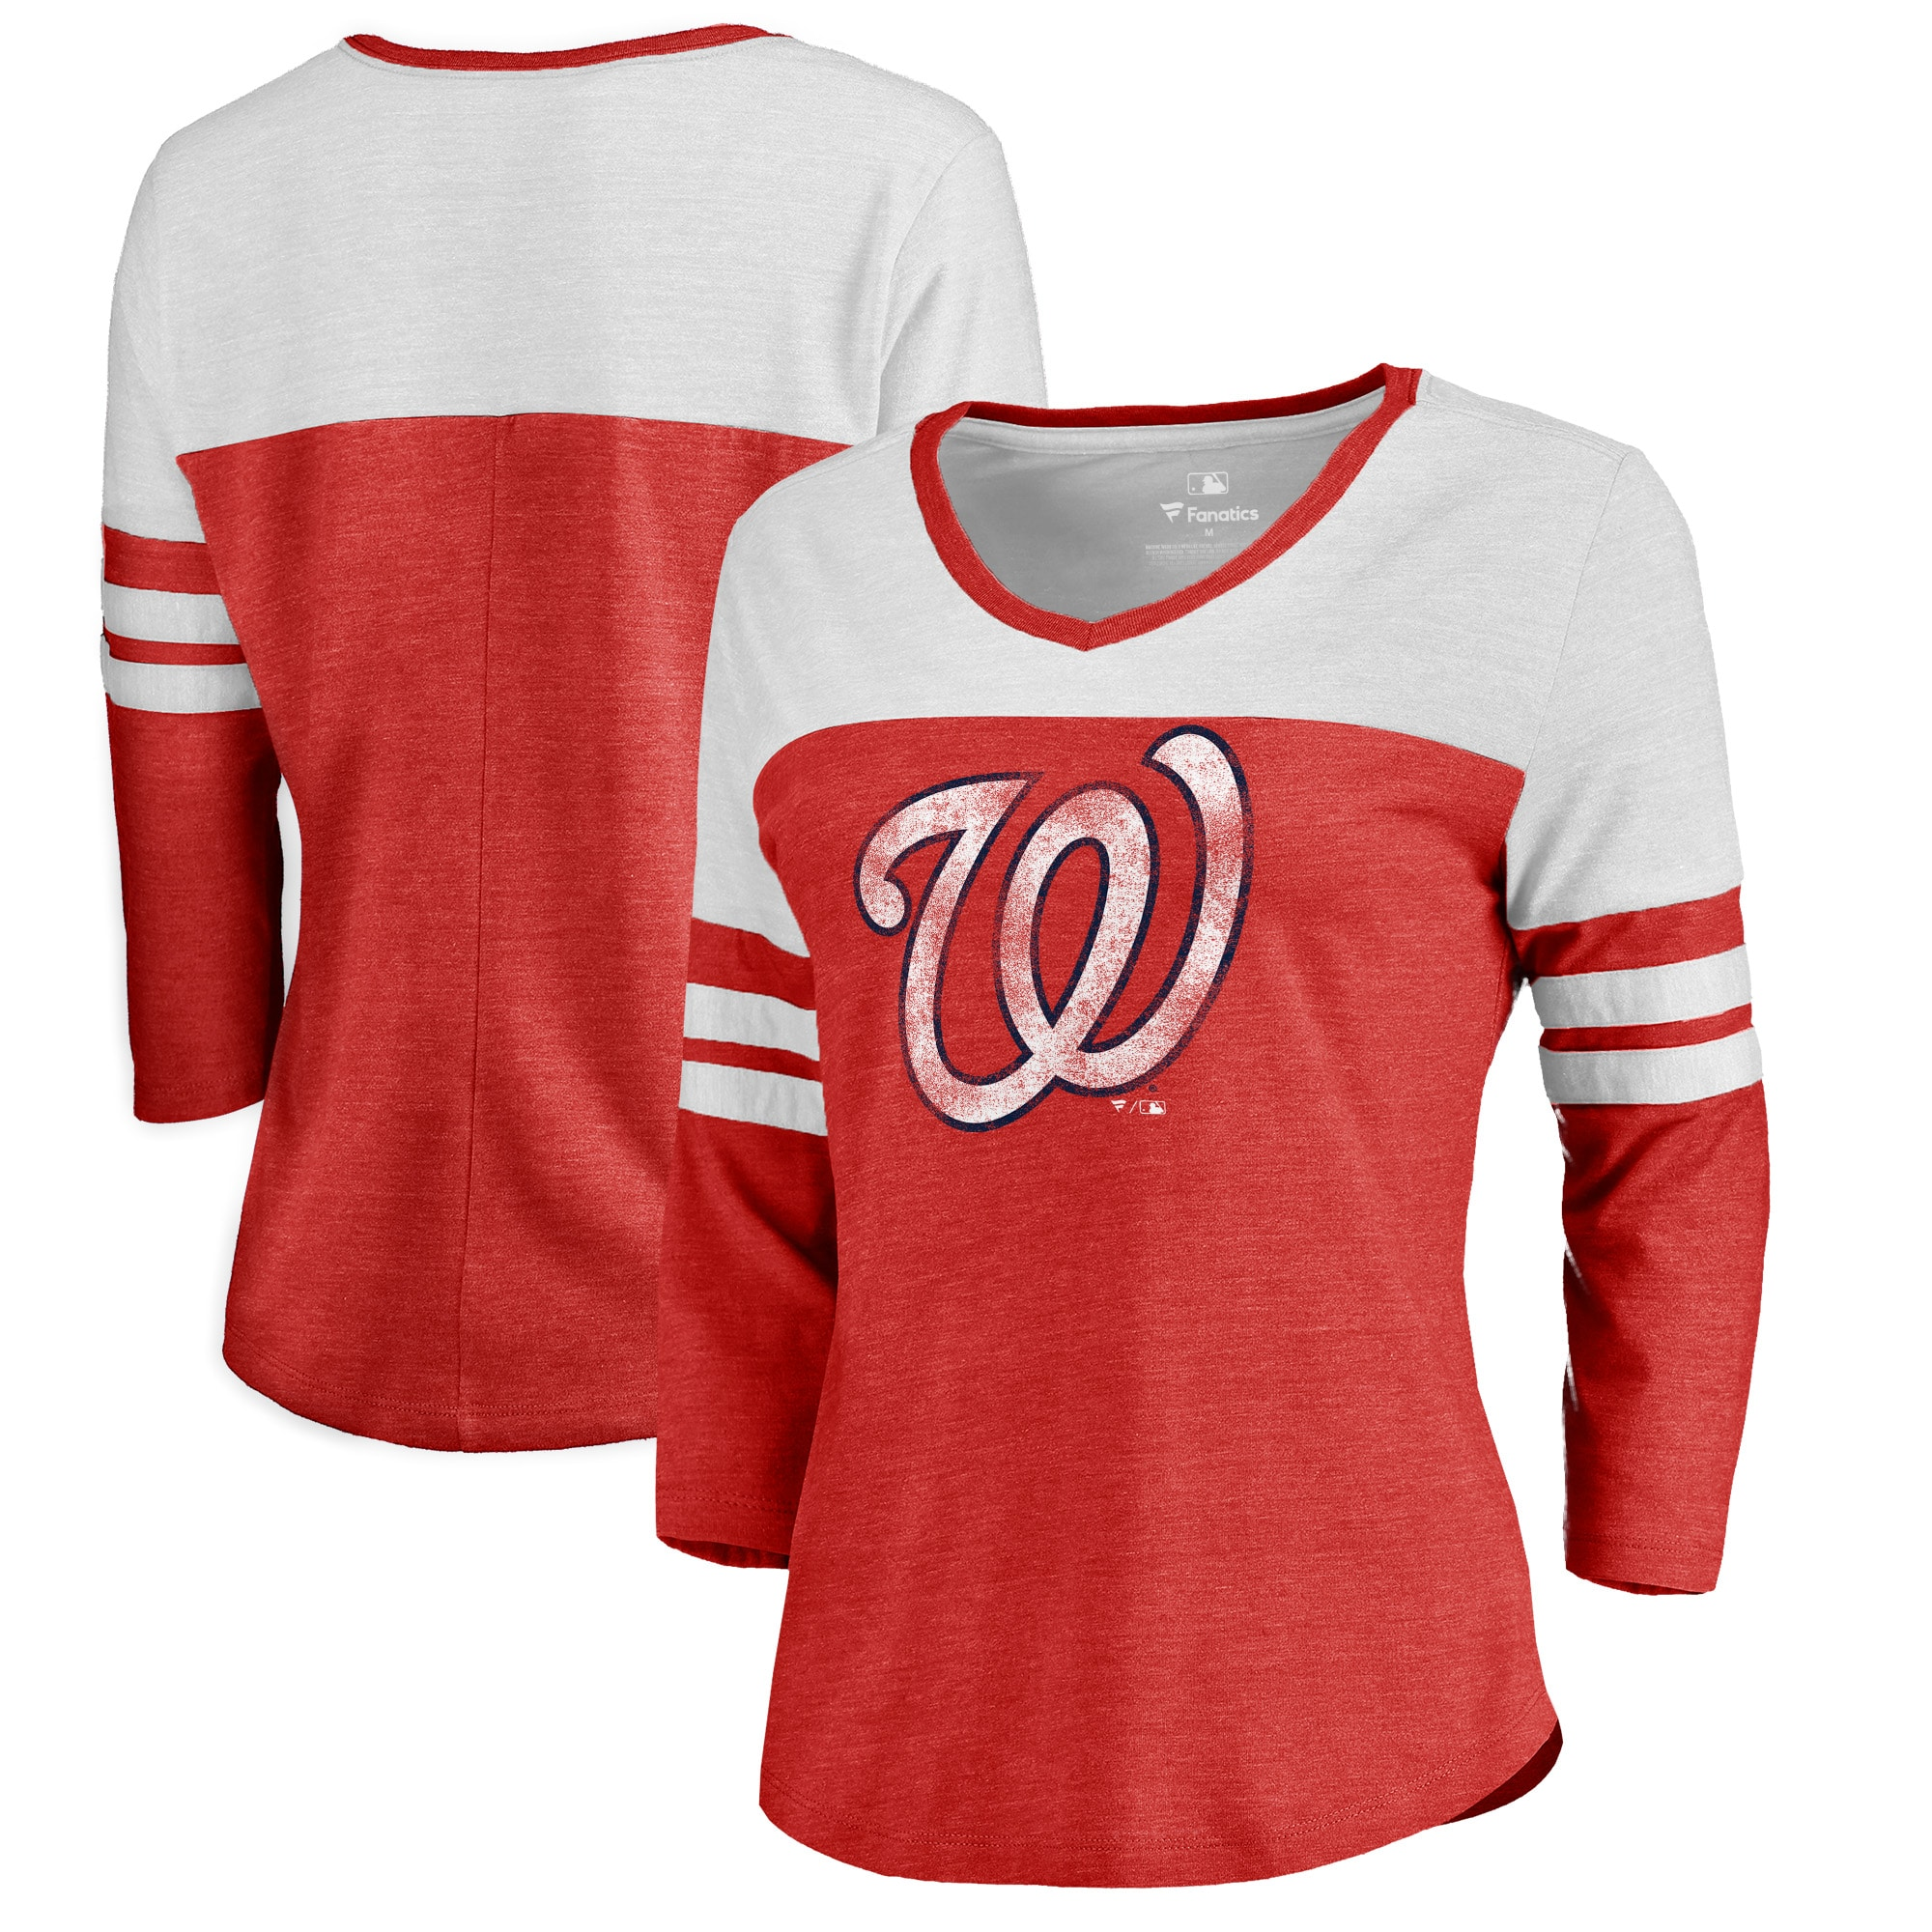 Washington Nationals Fanatics Branded Women's Distressed Team Logo 3/4 Sleeve Tri-Blend T-Shirt - Red/White